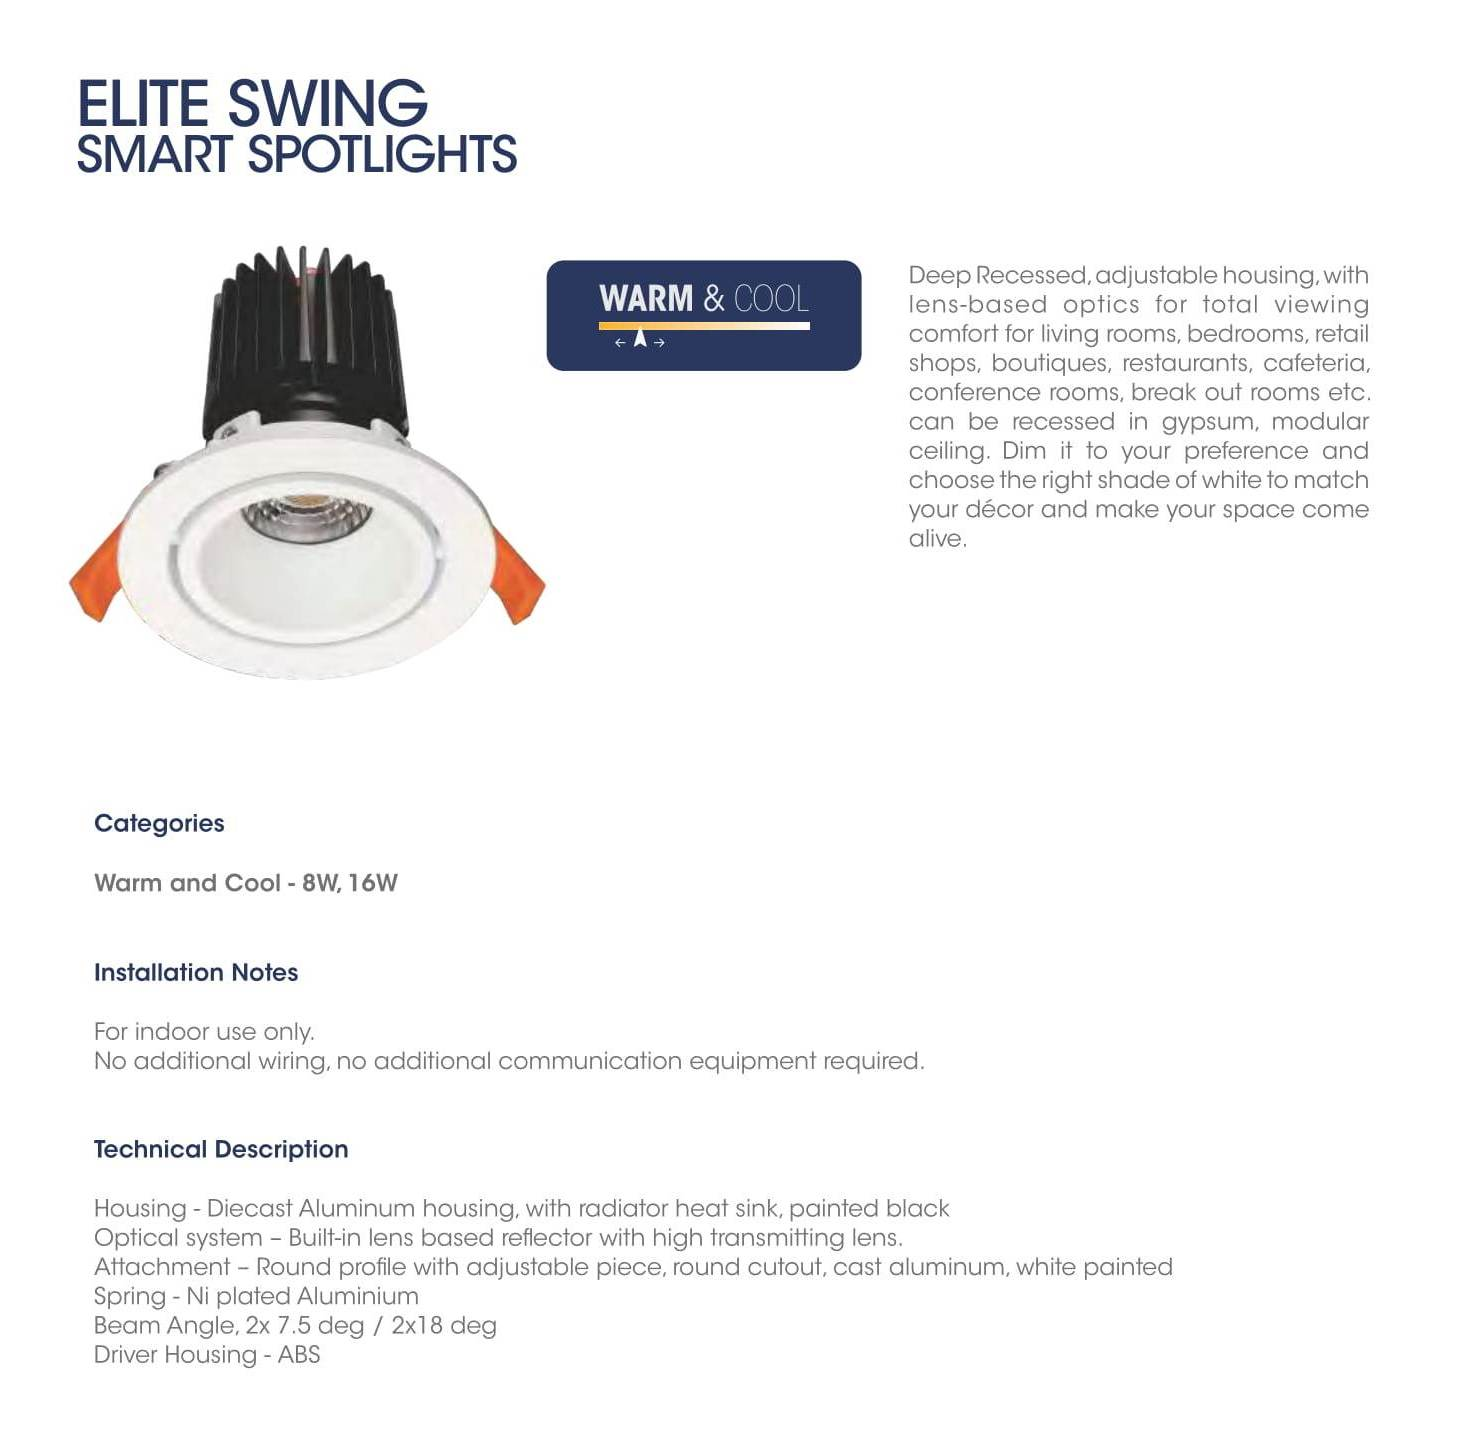 Elite Swing Smart Spotlights